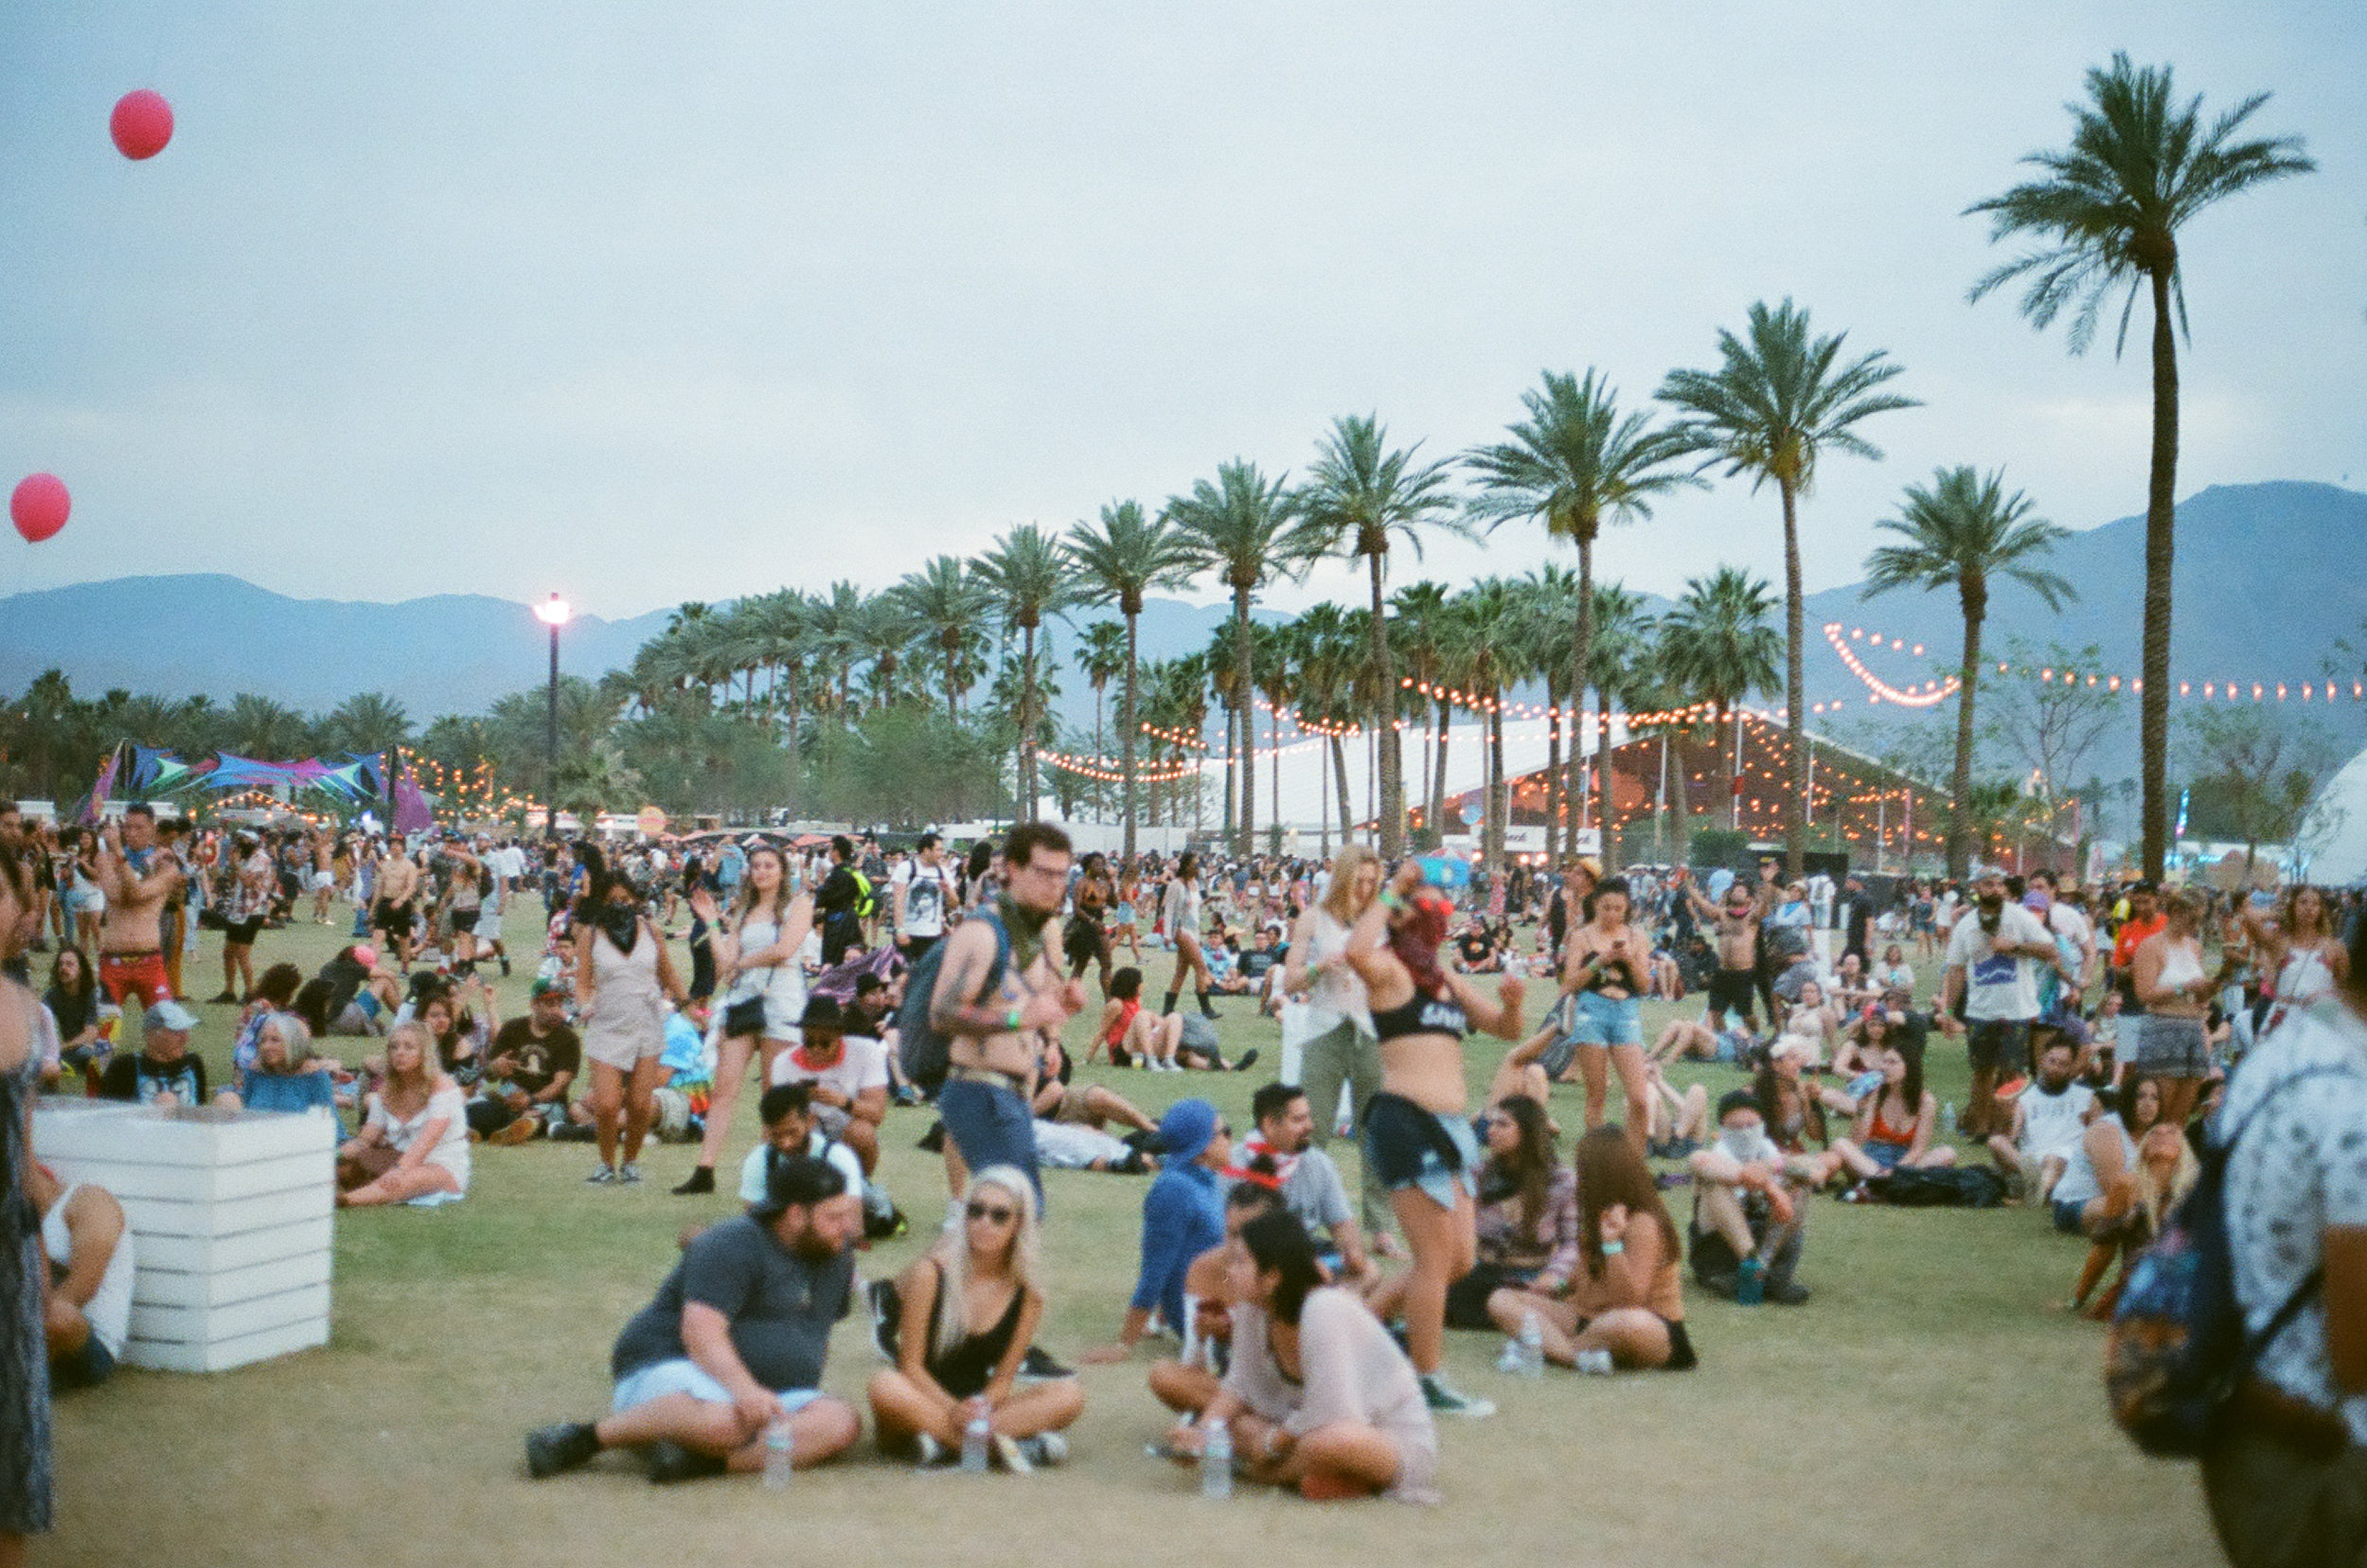 PLNT_MAG_COACHELLA_PHOTOS_29.JPG